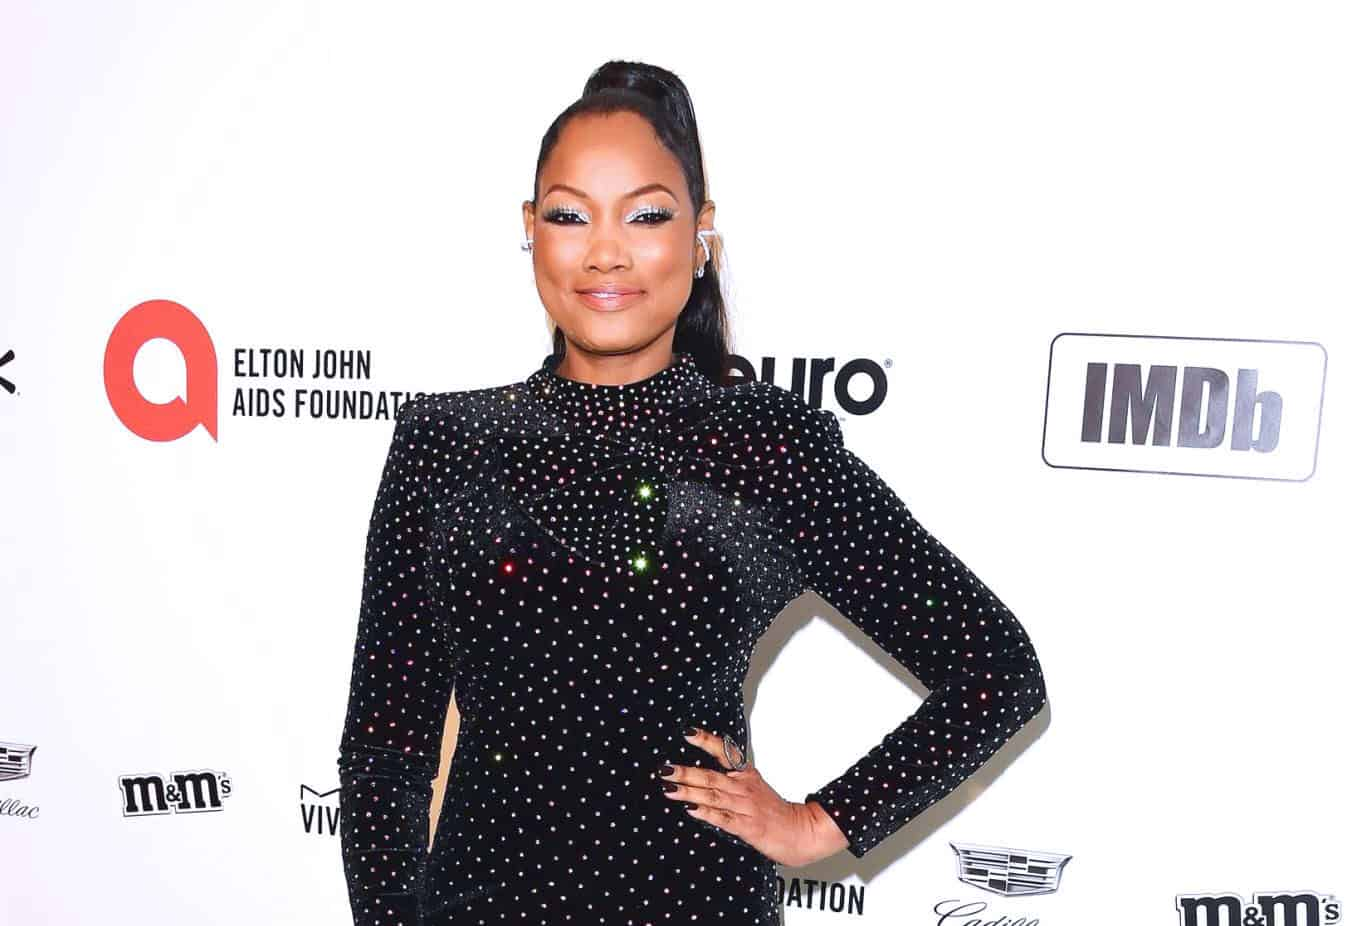 PHOTOS: RHOBH Star Garcelle Beauvais Becomes a Grandma! See Photos of Garcelle's Son and Grandchild Plus Congratulatory Messages From Co-Stars